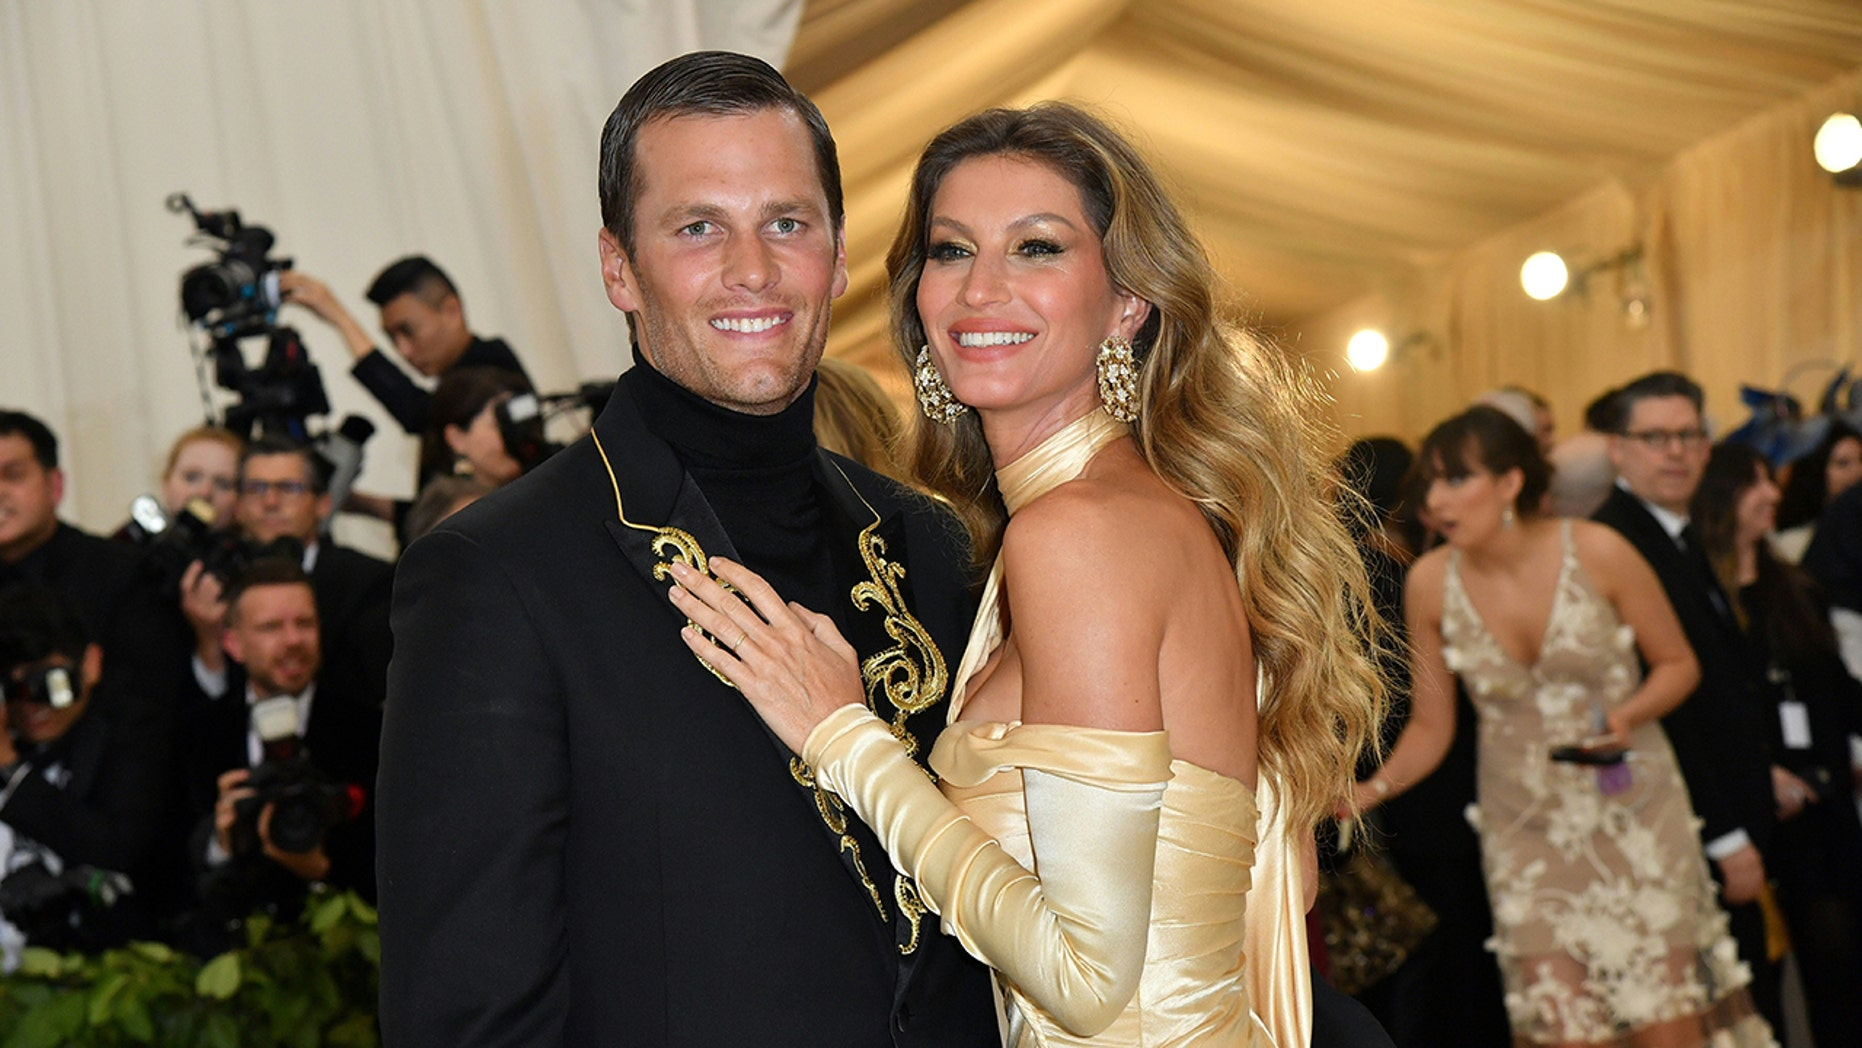 Tom Brady and Gisele Bündchen arrive for the Met 2018 Gala on May 7, 2018 at the Metropolitan Museum of Art in New York.